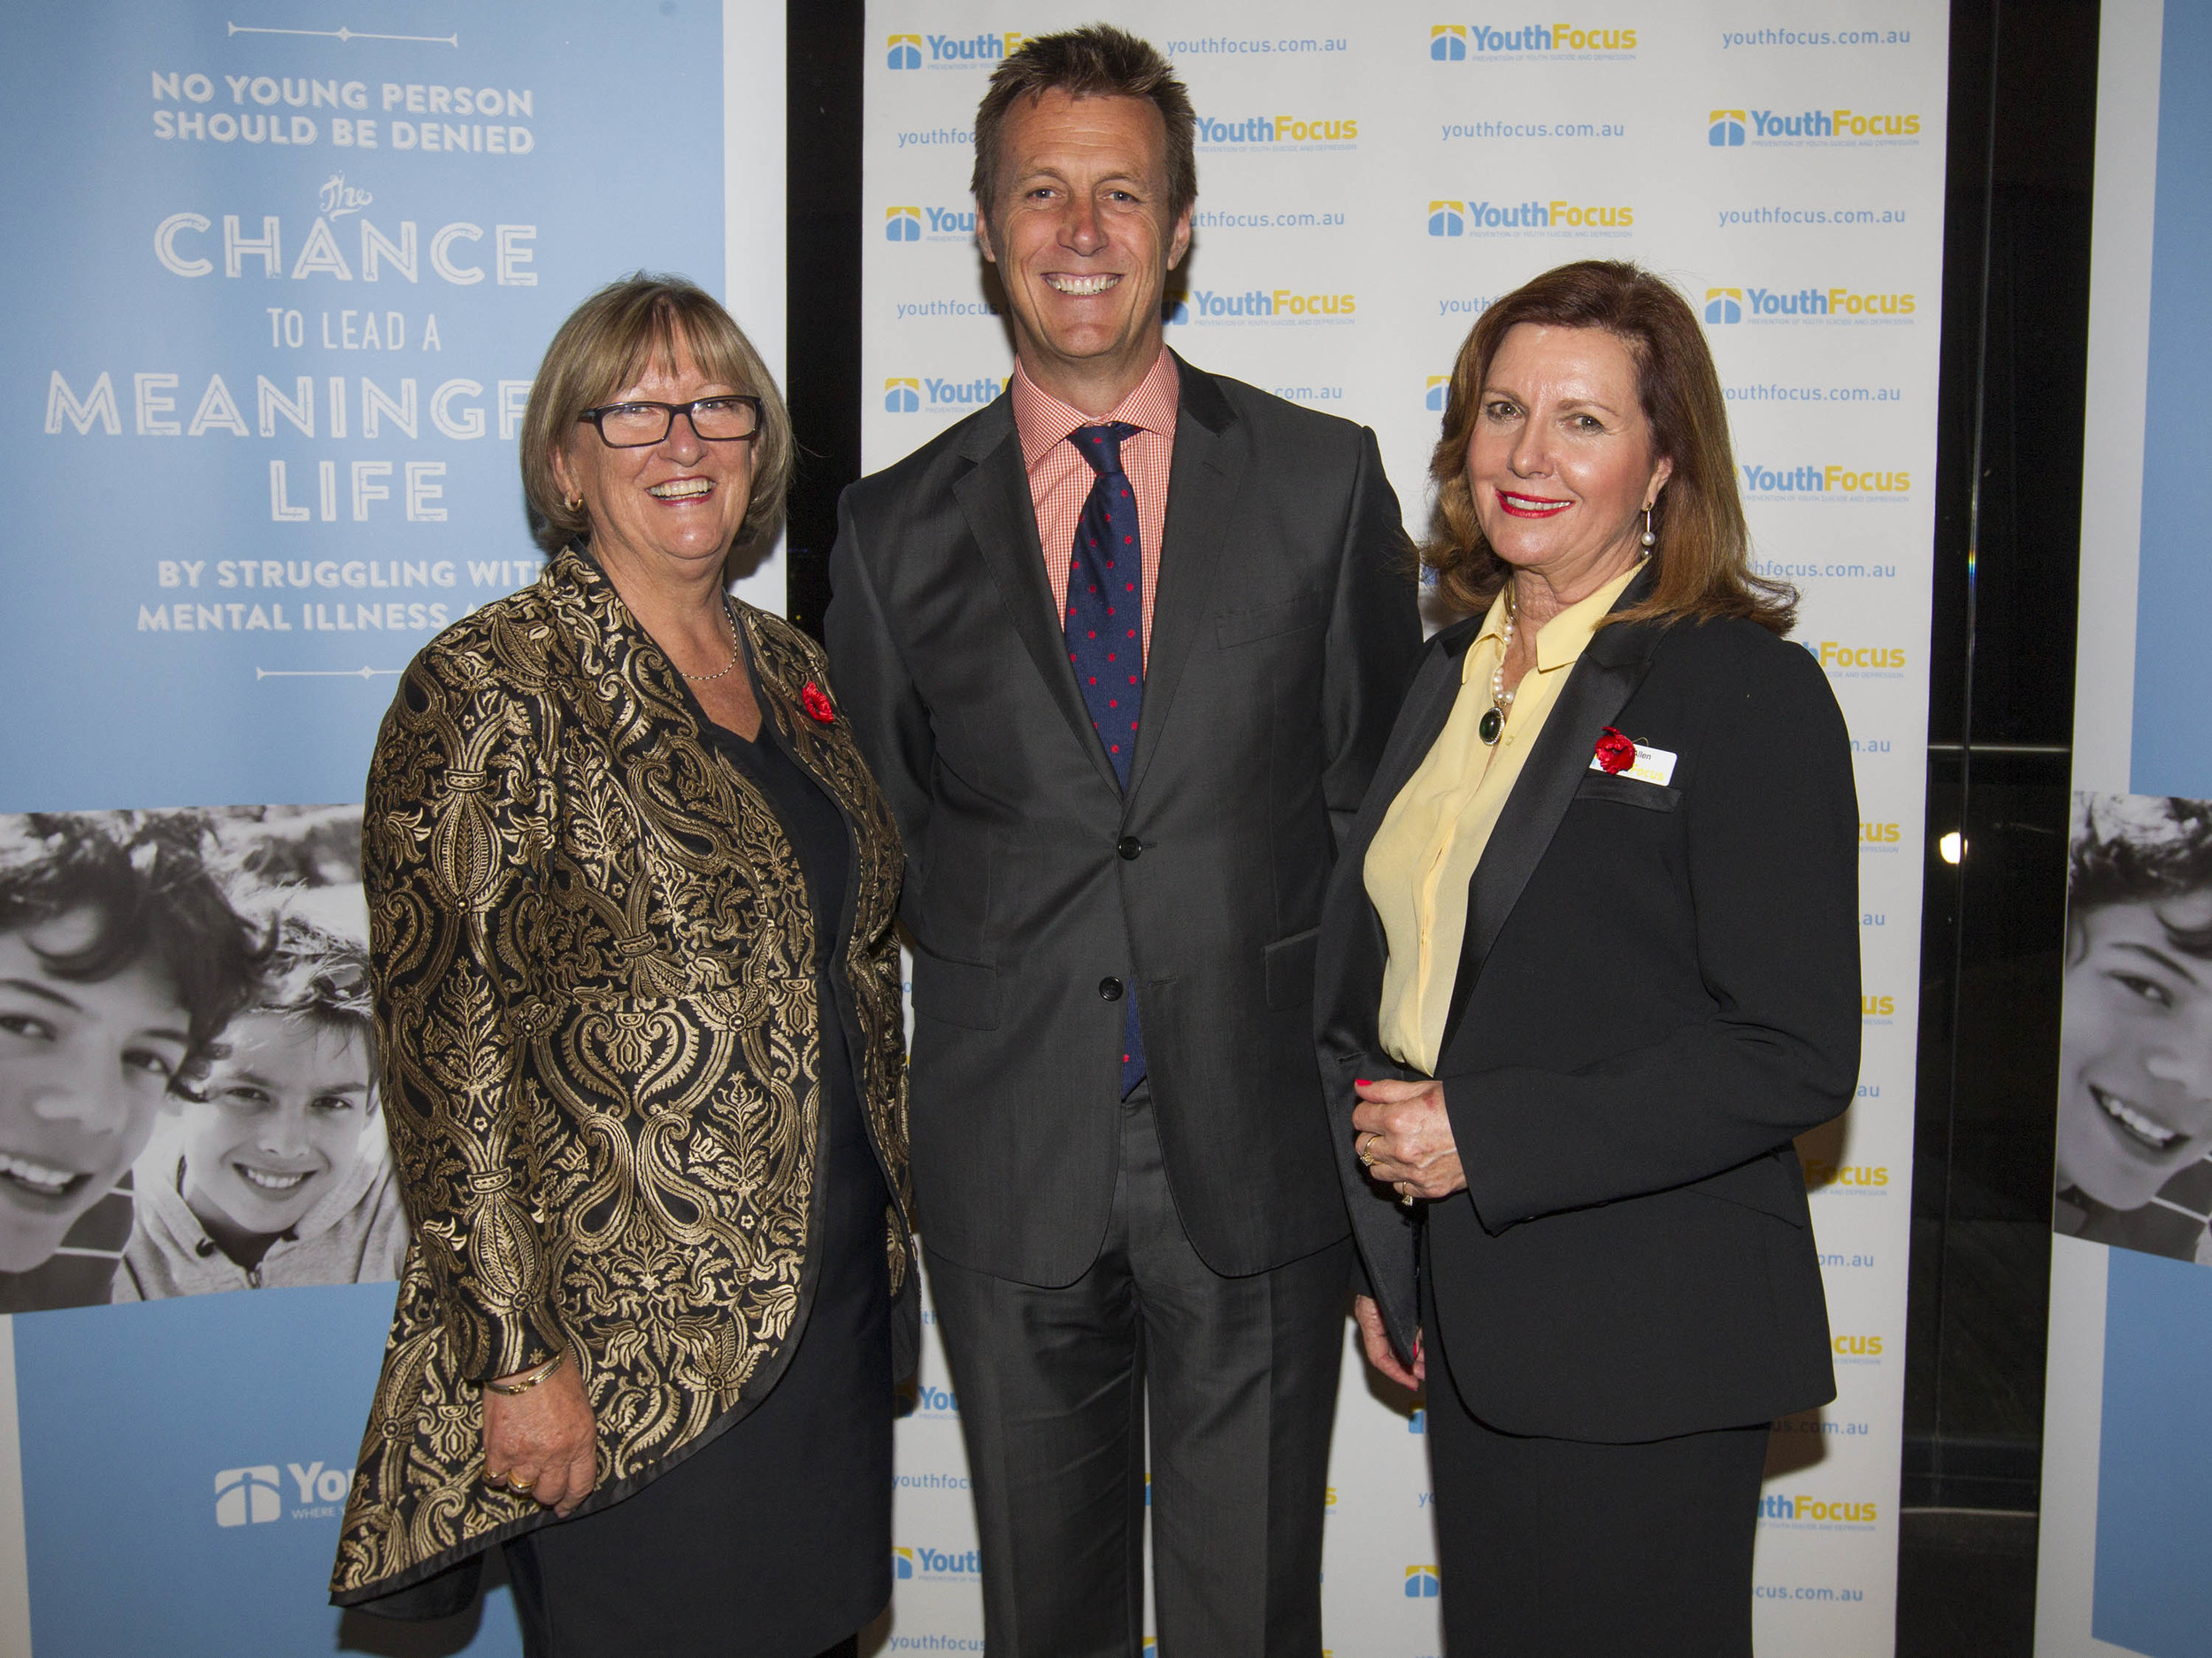 Minister for Mental Health; Hon Helen Morton MLC, Youth Focus Chairman; Peter Harold and Youth Focus CEO; Jenny Allen